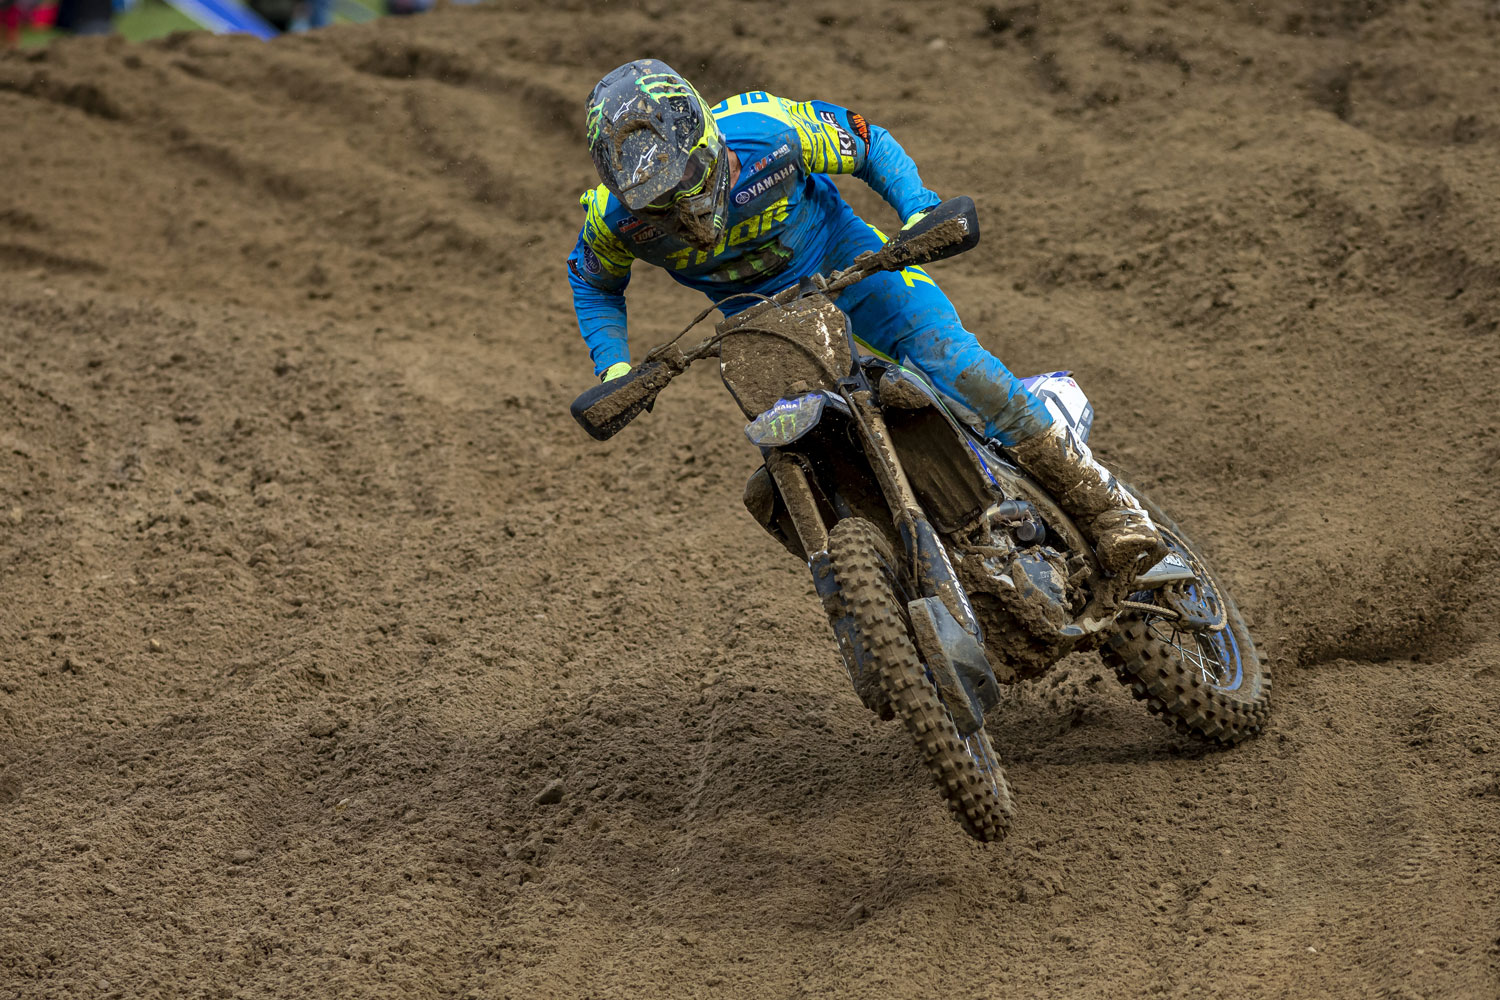 PLESSINGER_2019_SPRING-CREEK-web.jpg